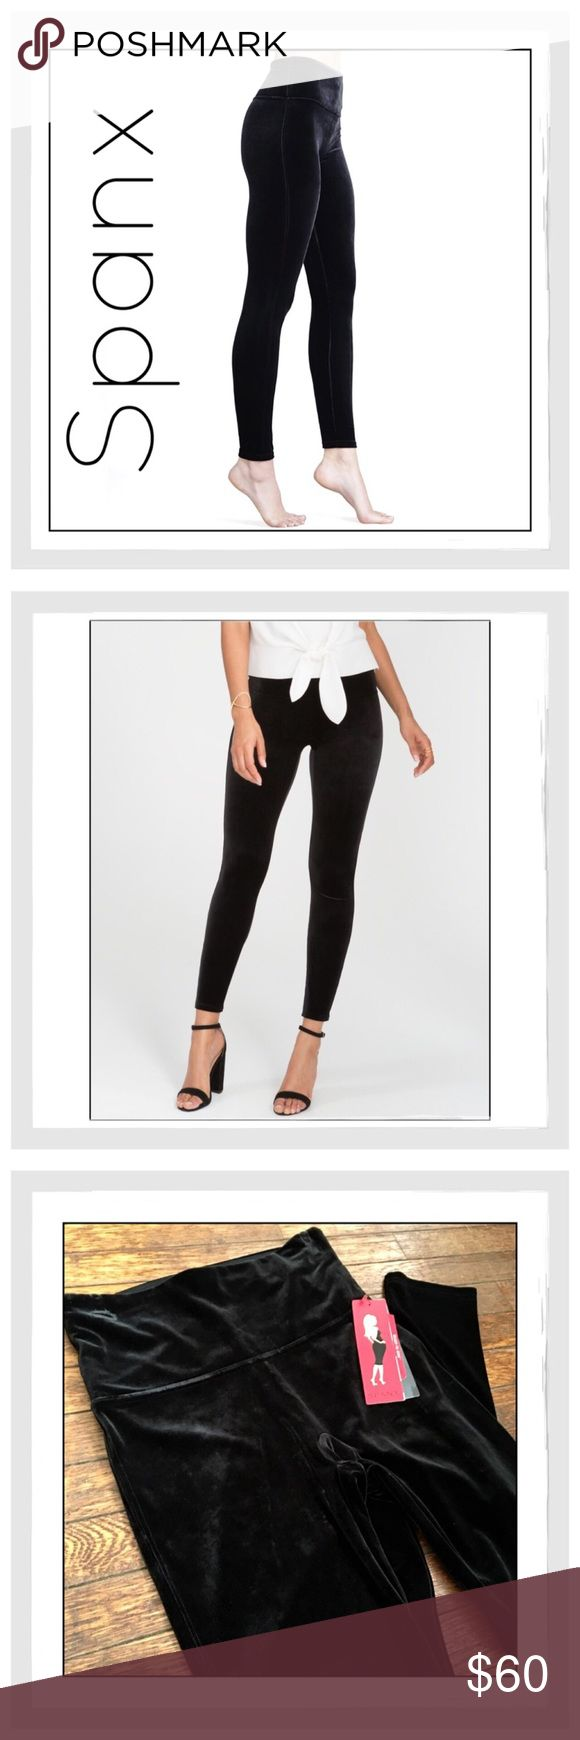 ✨Spanx 'Ready To Wow' Black Velvet Leggings✨ ✨Spanx 'Ready To Wow' Black Velvet Leggings✨Look your best when getting dressed with SPANX Ready-to-Wow leggings✨This stunning style has the slim built-in, shapes your silhouette while looking chic, and instantly makes your wear-and-wow wardrobe complete✨Slimming leggings that are meant to be seen✨Chic Shaping Waistband fully flattens the tummy for a wardrobe-wowing experience✨Fabric keeps your rear and thighs looking better than ever✨Fabric…